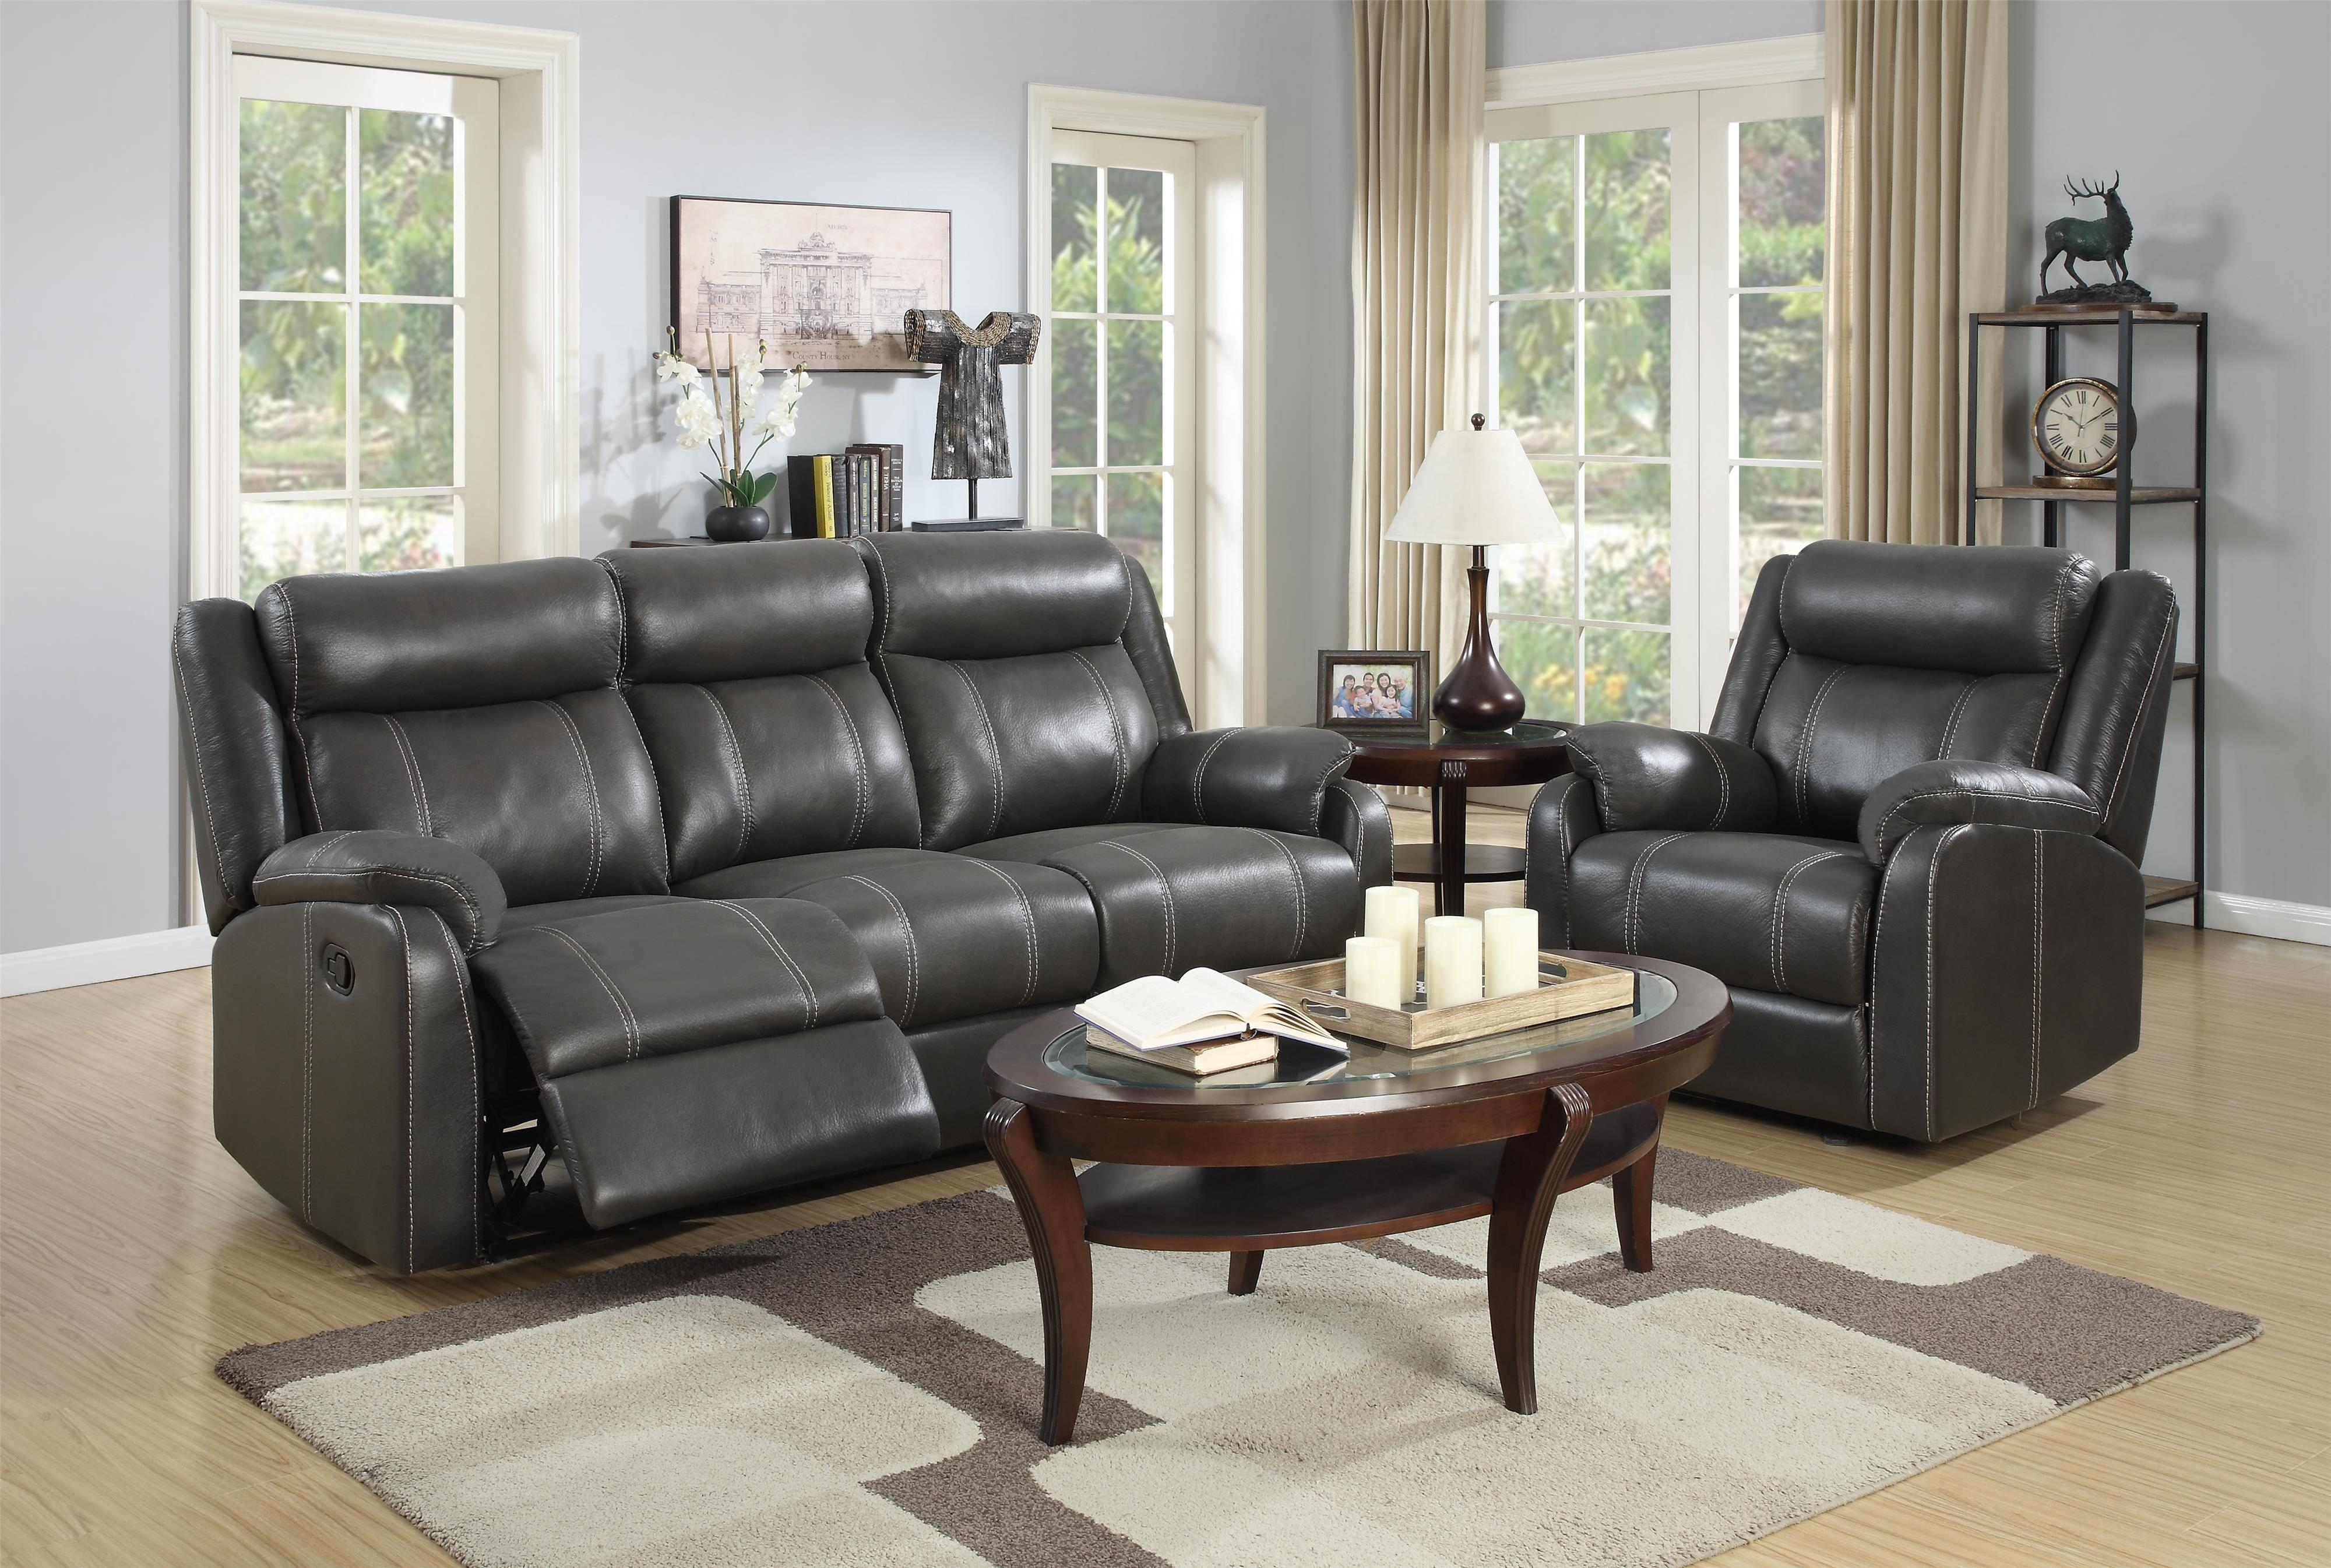 Domino-US Reclining Living Room Group by Klaussner International at Pilgrim Furniture City